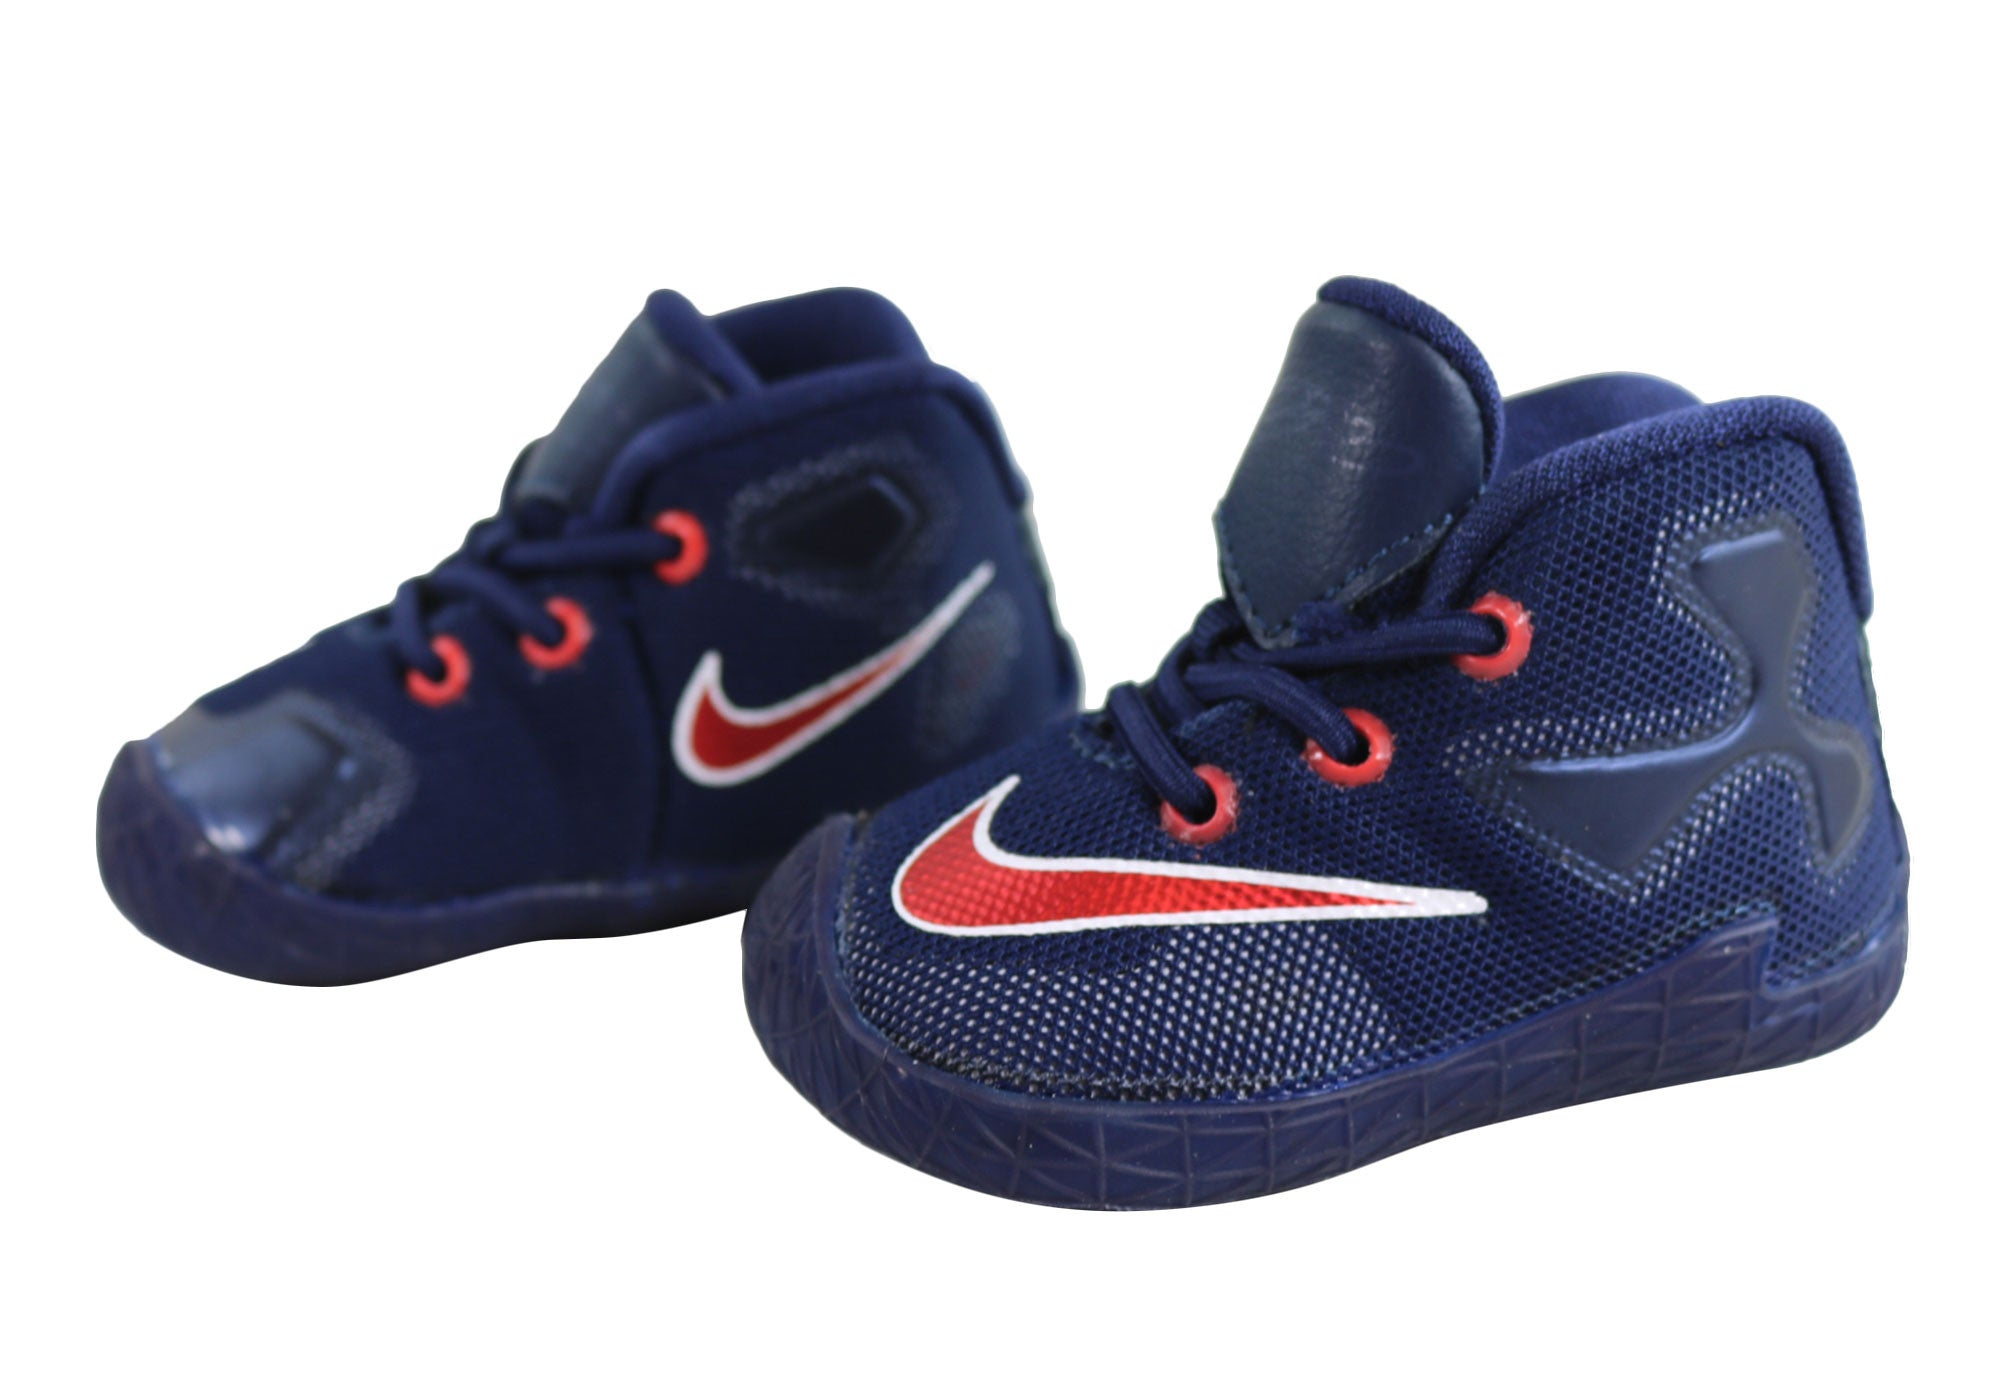 Nike Lebron XIII Toddler Baby Boys fortable Soft Sole Shoes